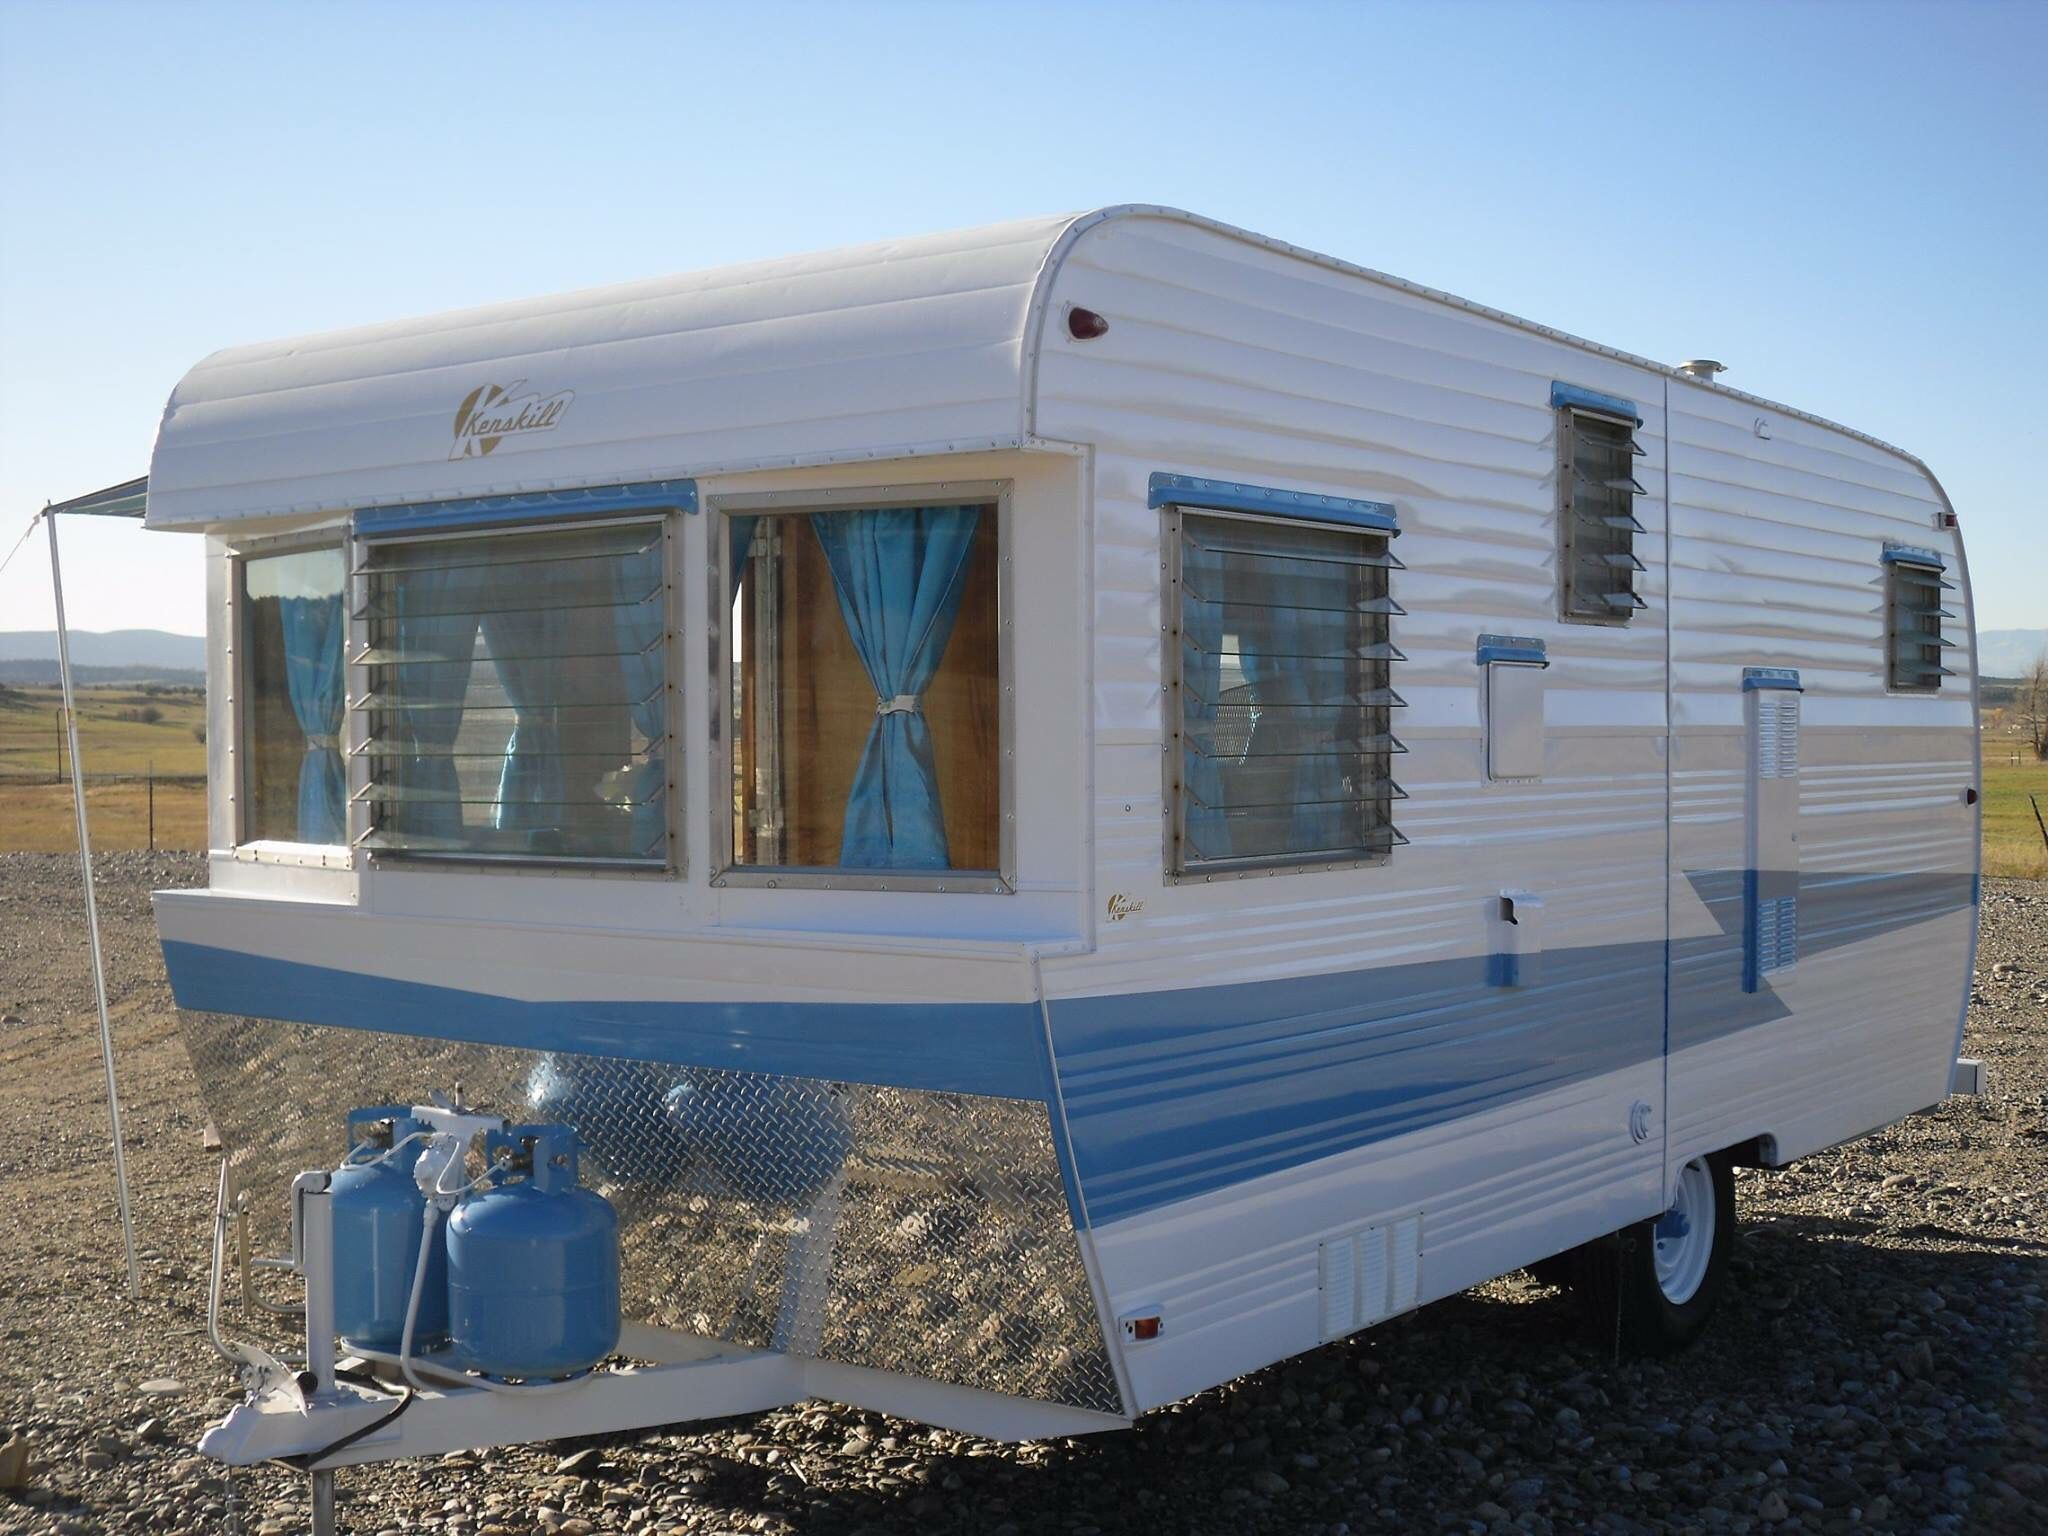 Retro Mobile Homes Vintage Campers Love The Front Windonws On This One Let In The